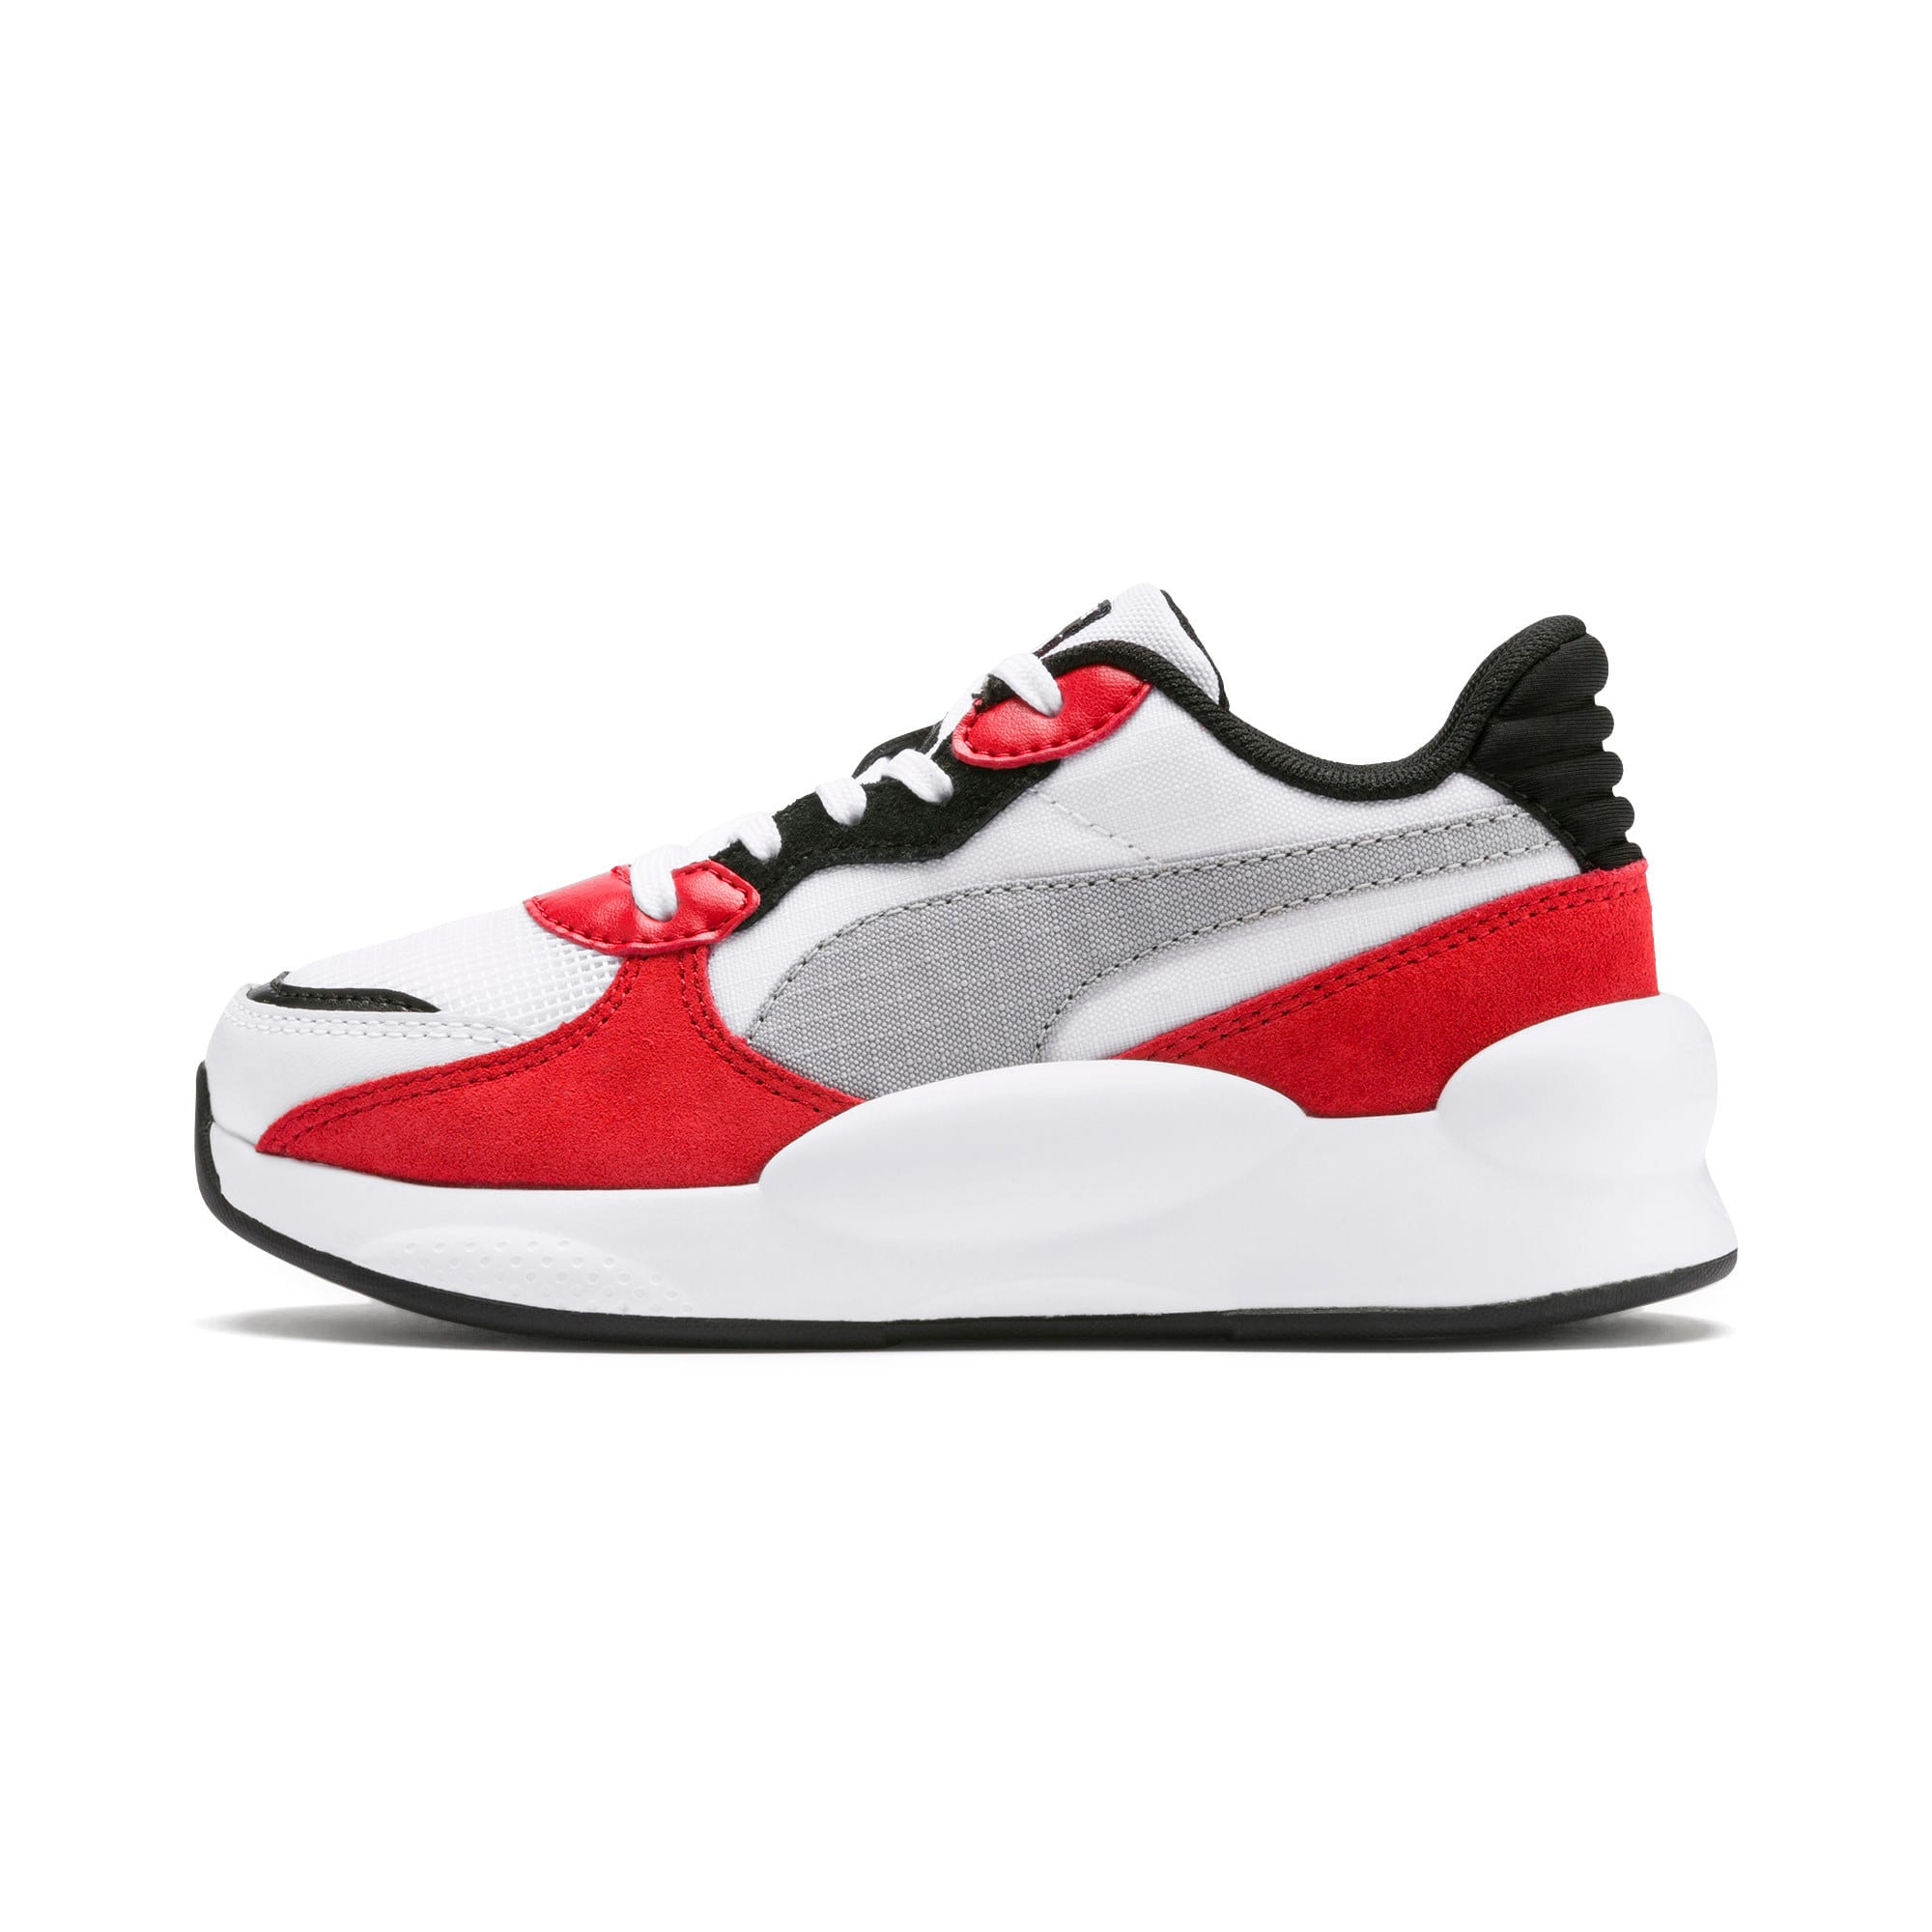 Thumbnail 1 van RS 9.8 Space kindersportschoenen, Puma White-High Risk Red, medium